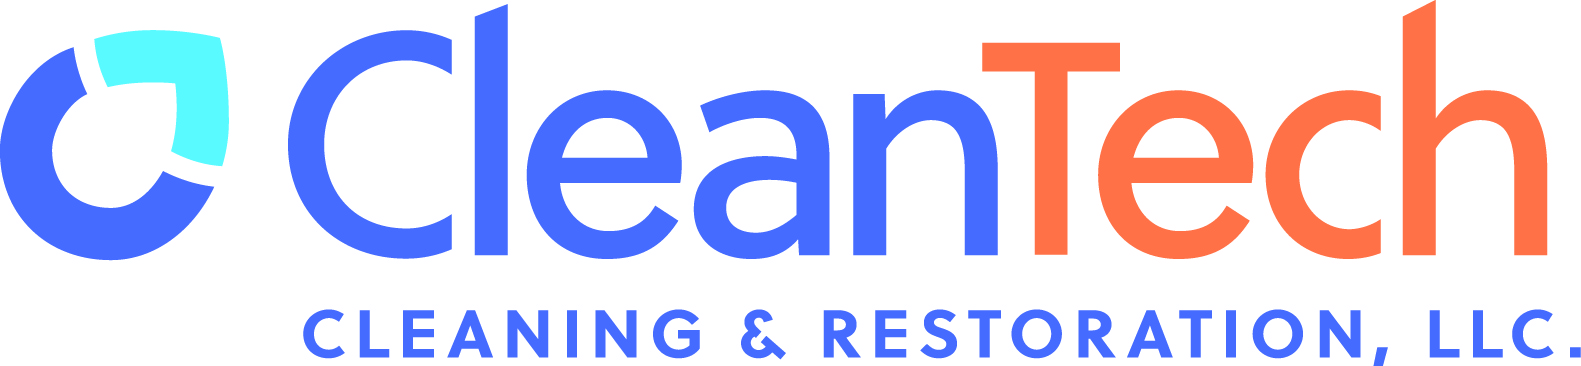 CLEANTECH CLEANING & RESTORATION